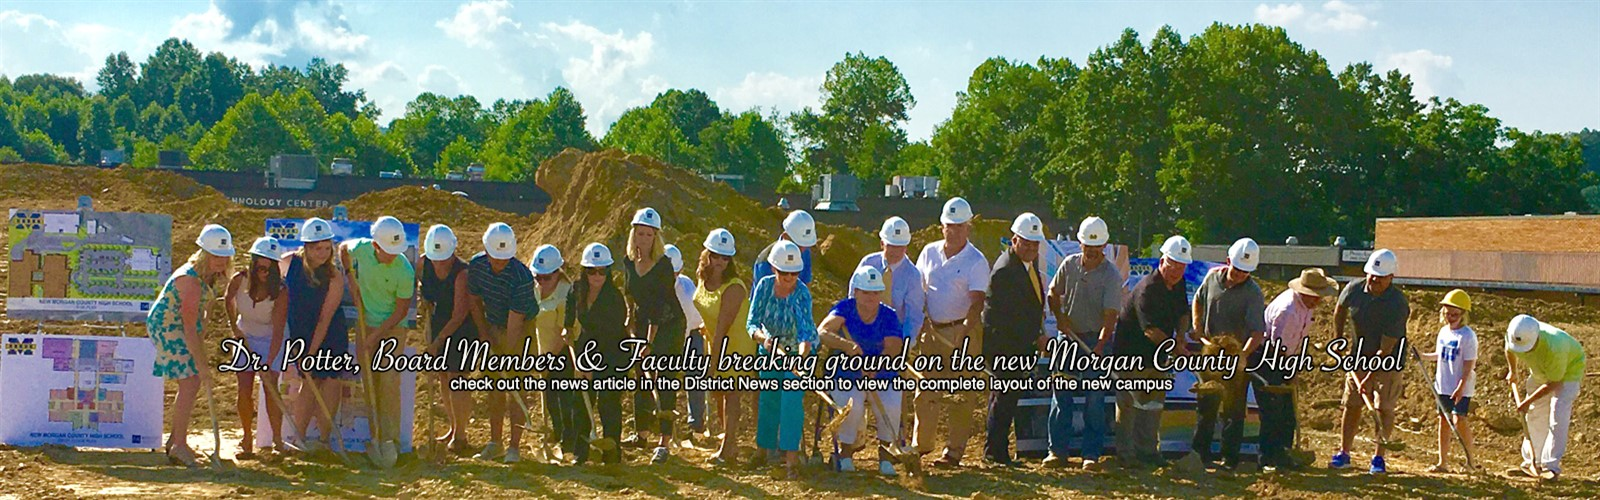 Ground breaking ceremony for the new Morgan County High School